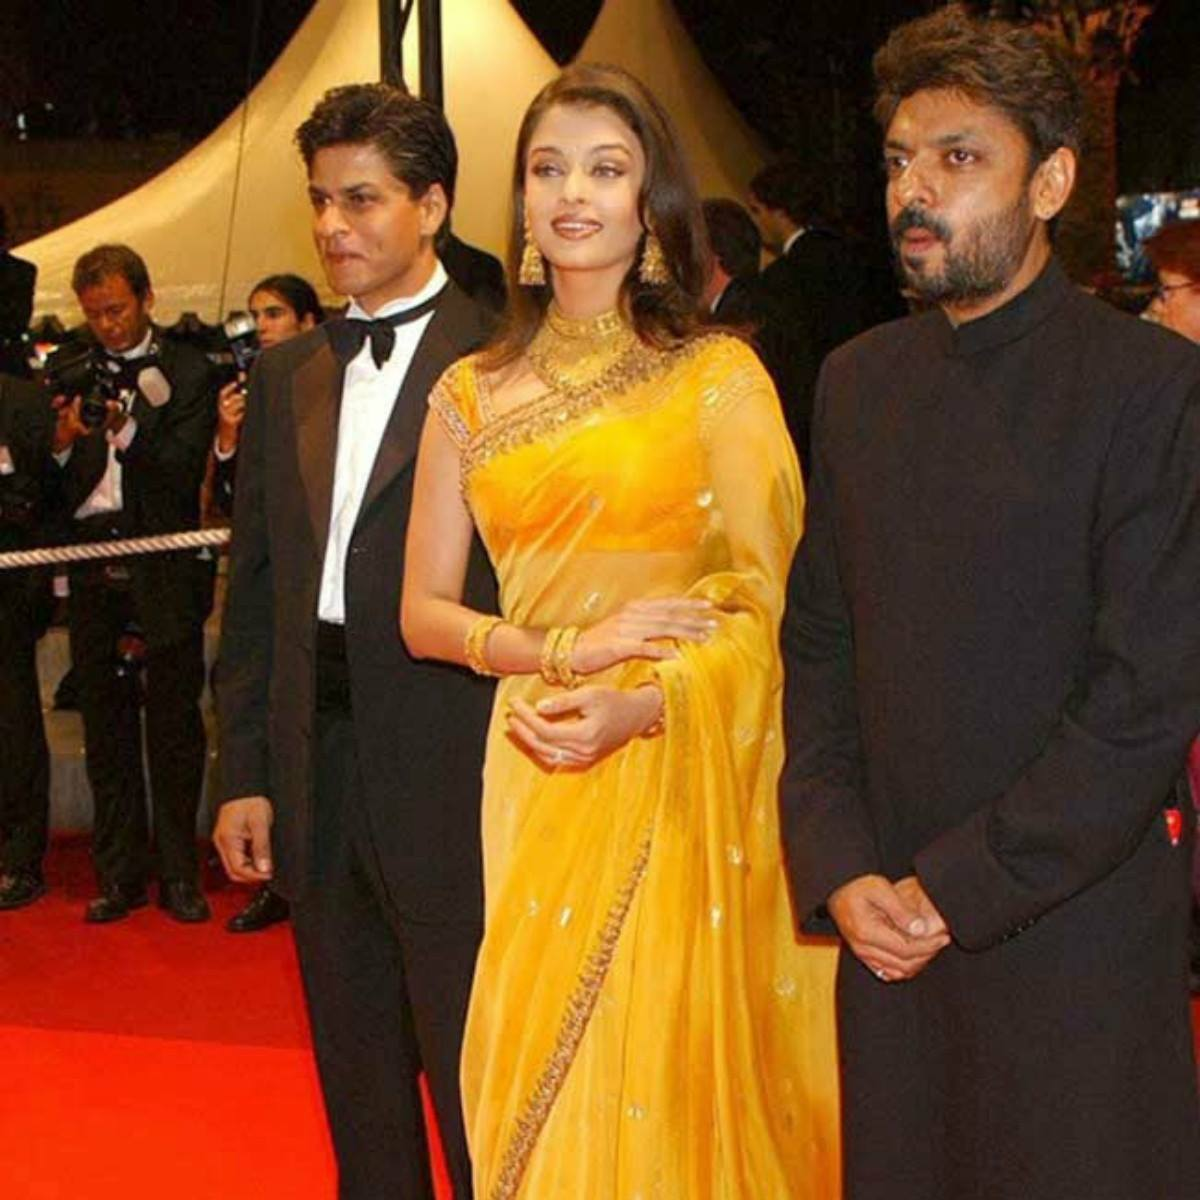 She made her Cannes debut alongside Shah Rukh Khan.